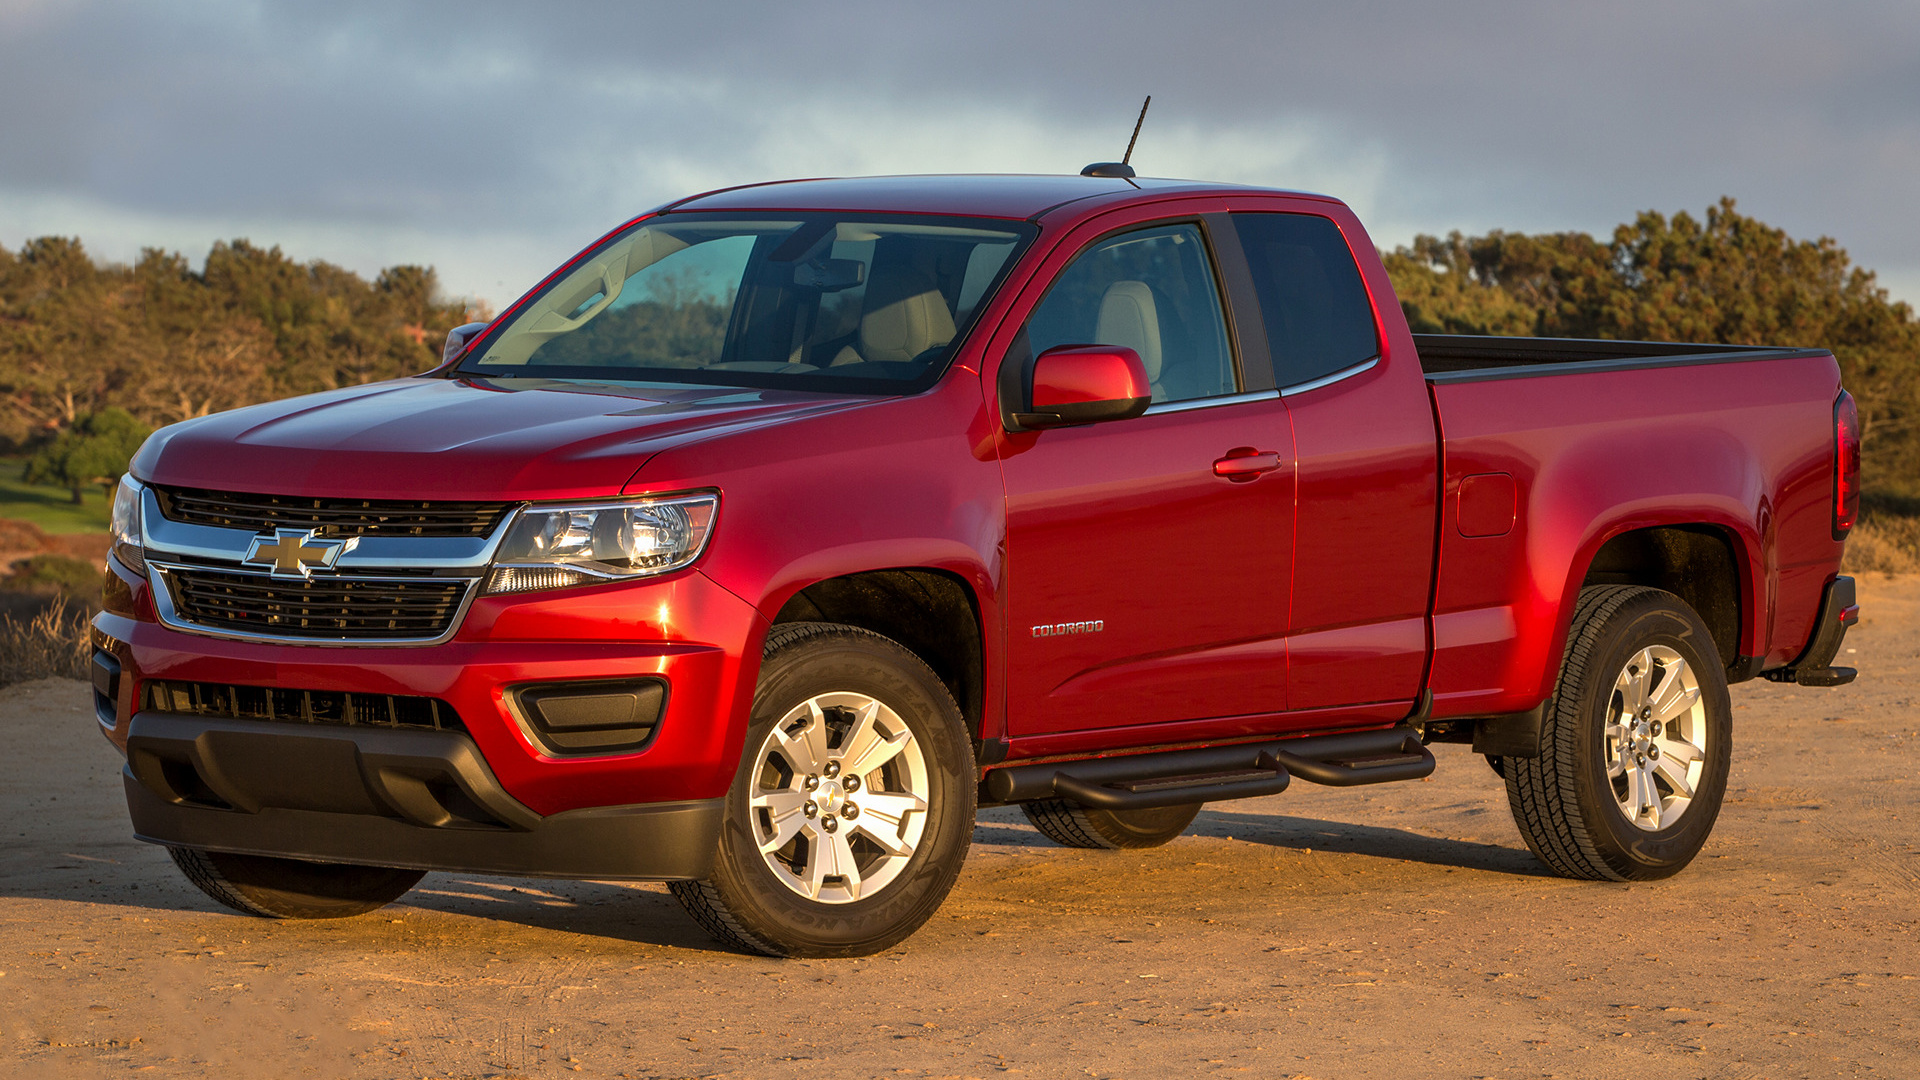 Chevy Colorado Crew Cab >> 2015 Chevrolet Colorado LT Extended Cab - Wallpapers and HD Images | Car Pixel